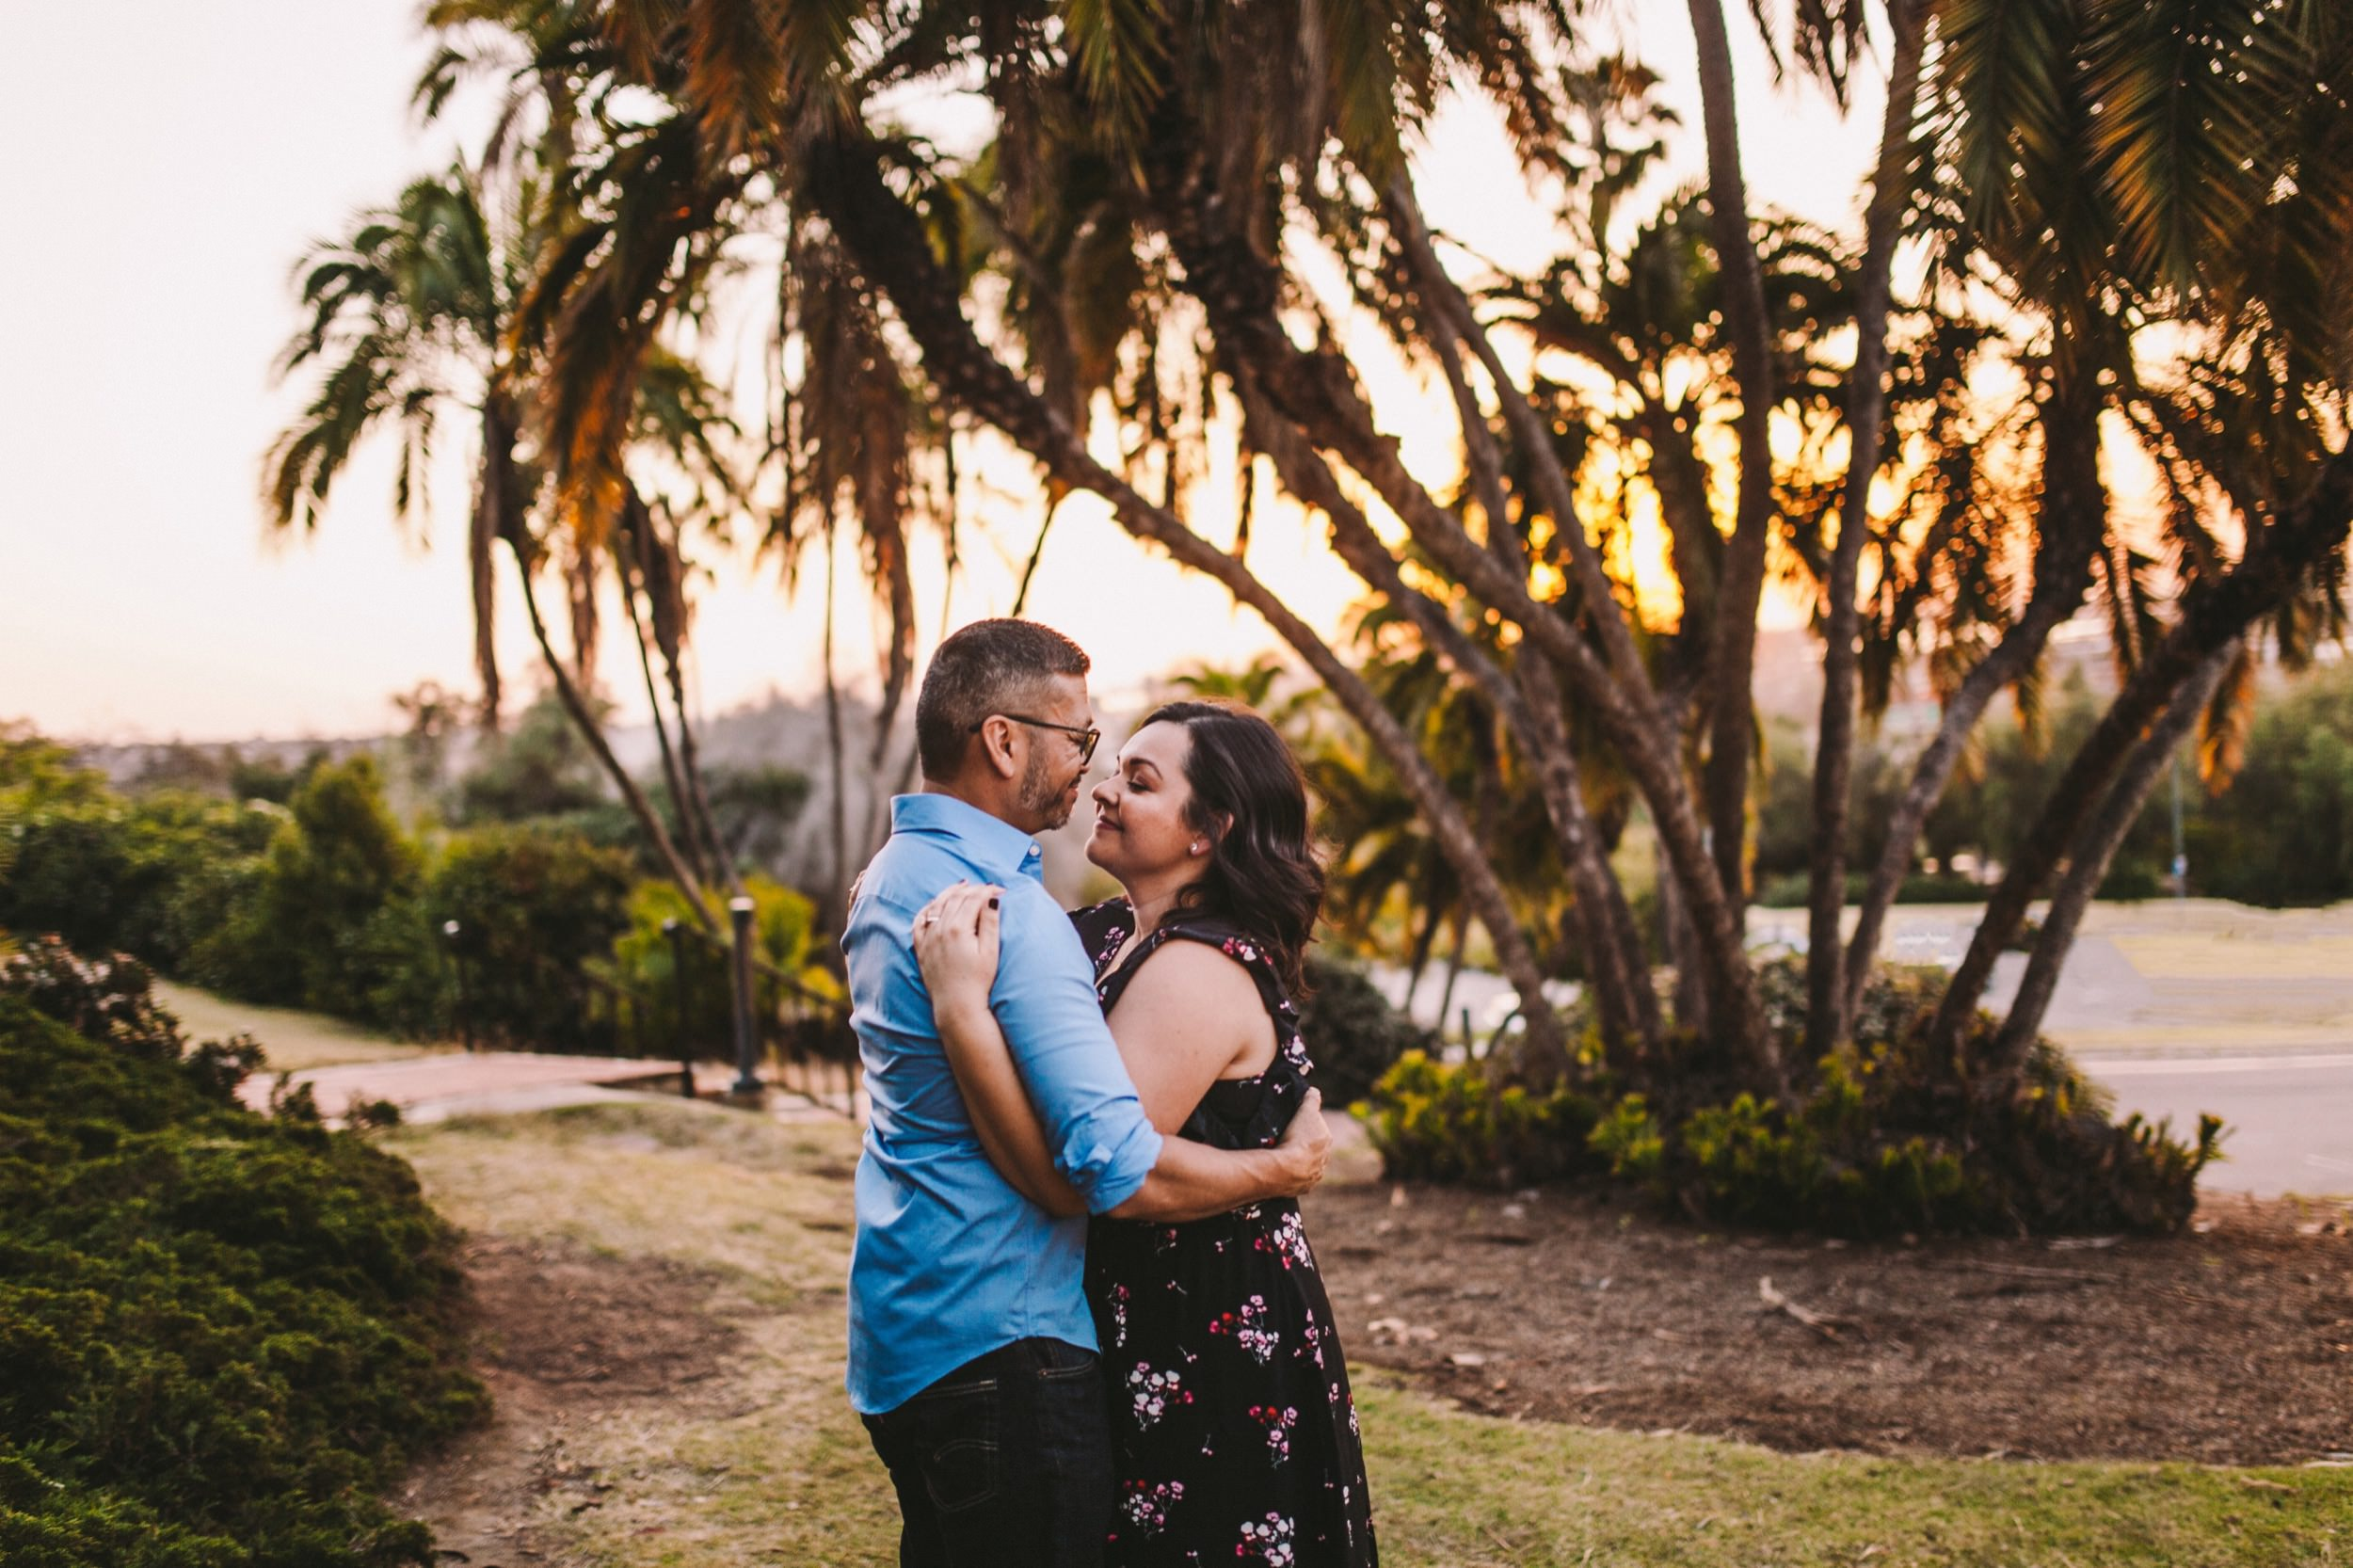 Presidio Park San Diego Engagement Photography Session-43.jpg